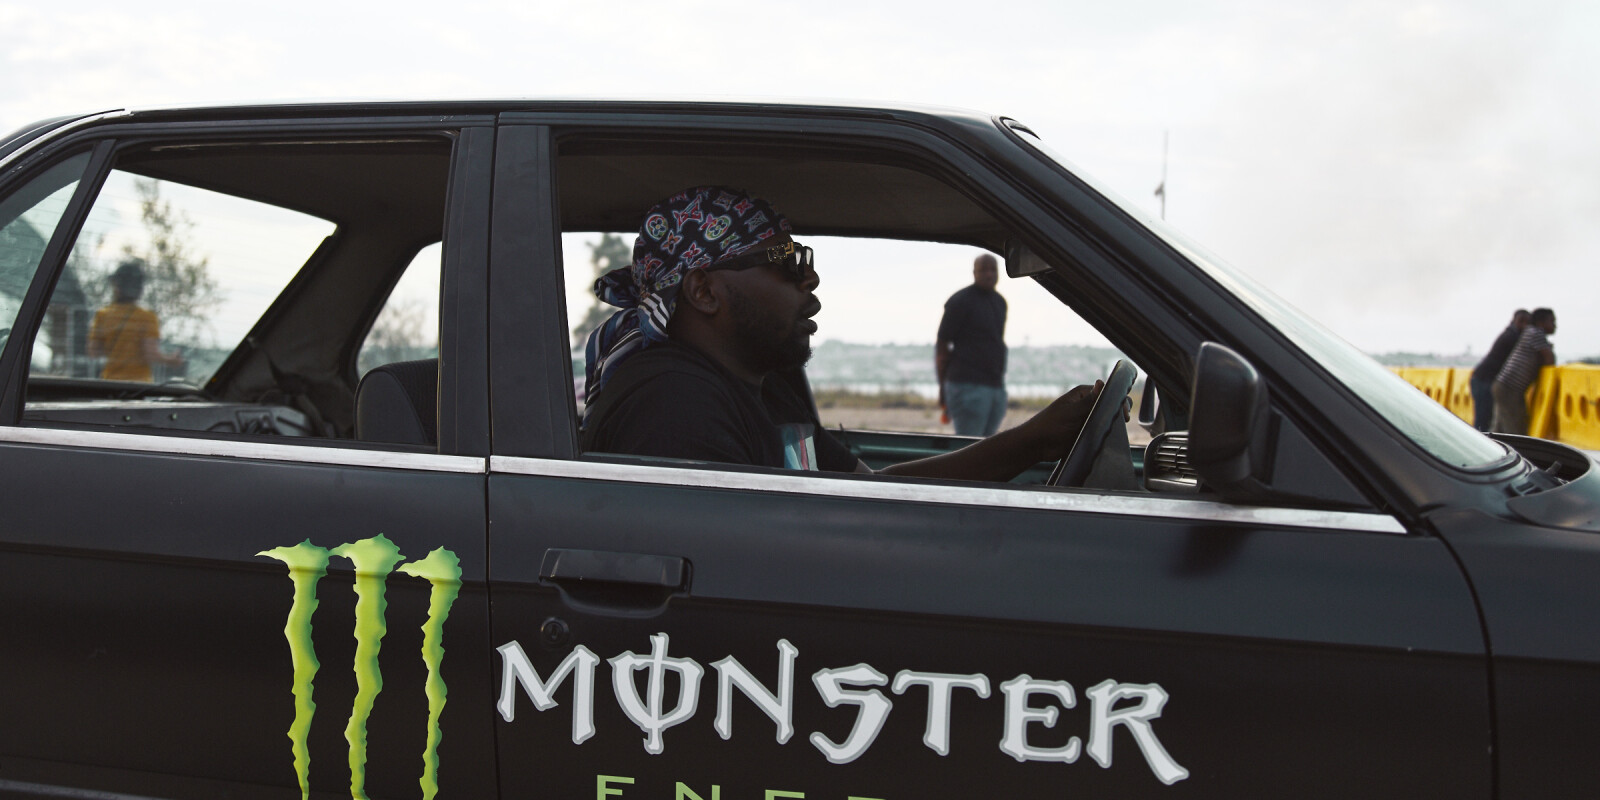 Photo Assets from the Spinning Monster shoot with DJ Maphorisa & Stacey Lee May.